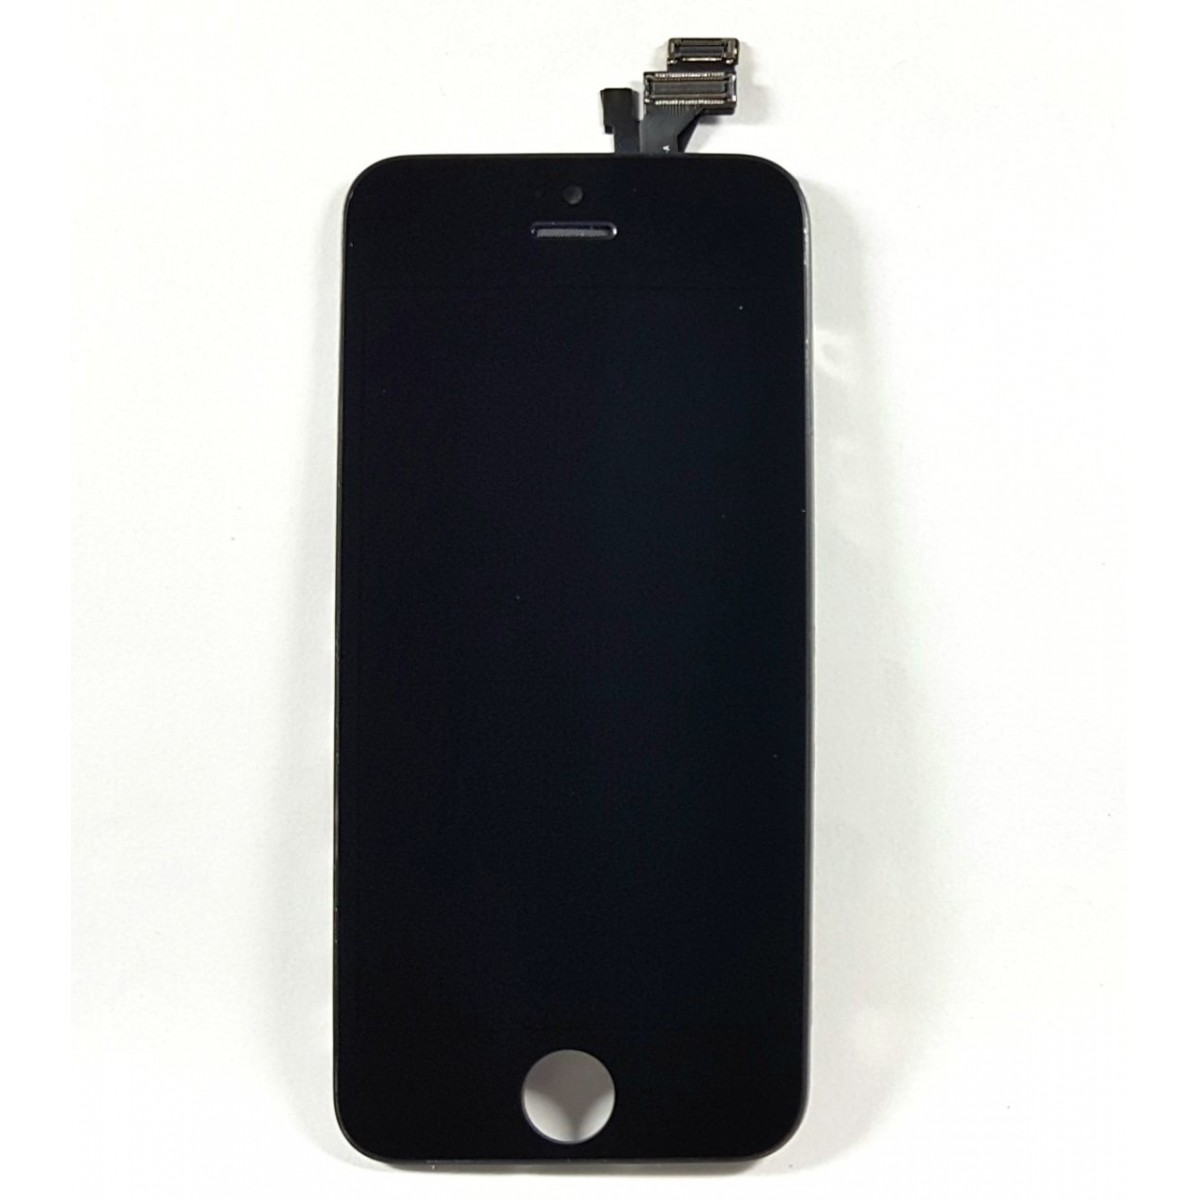 Display Frontal Apple Iphone 5 5g Preto Original